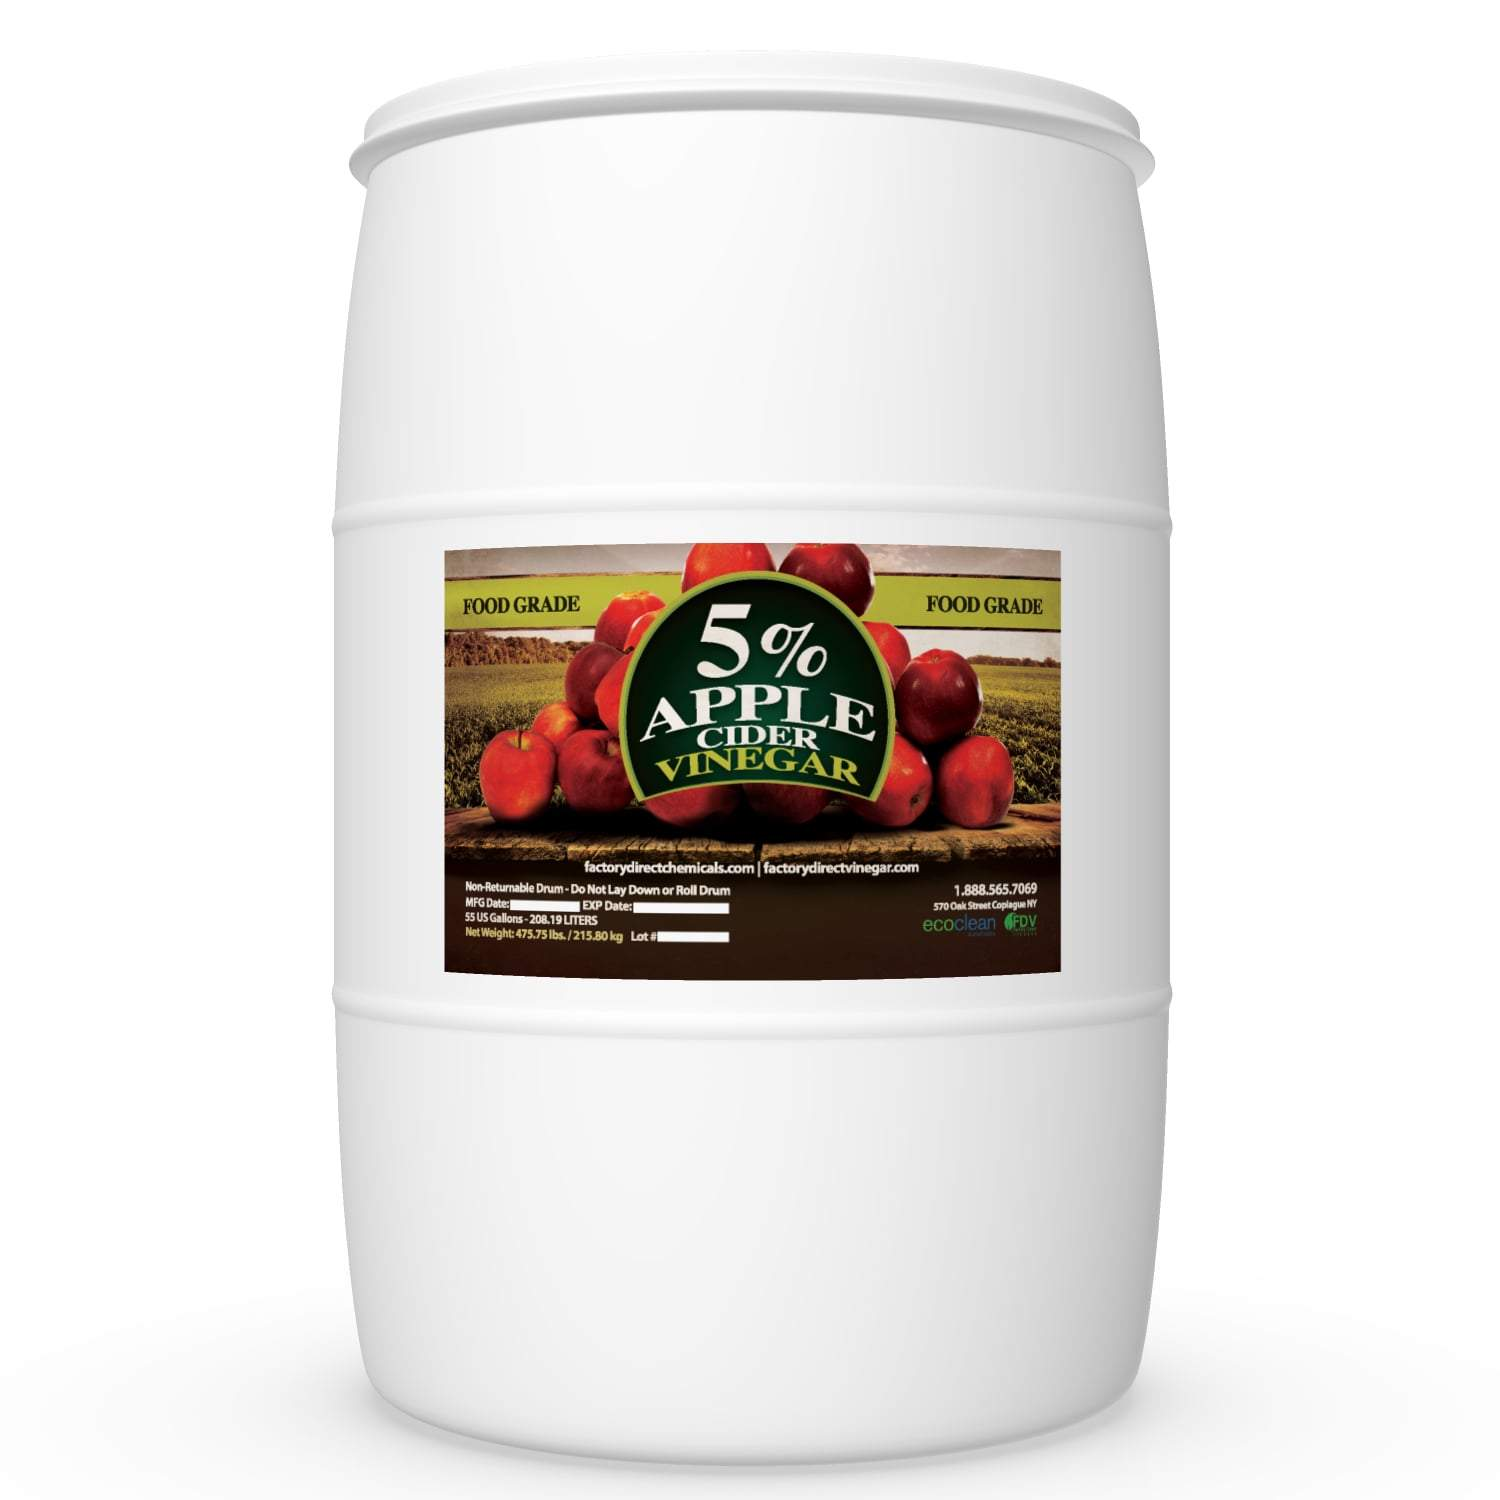 Organic Apple Cider Vinegar, 5% - 55 Gallon Drum